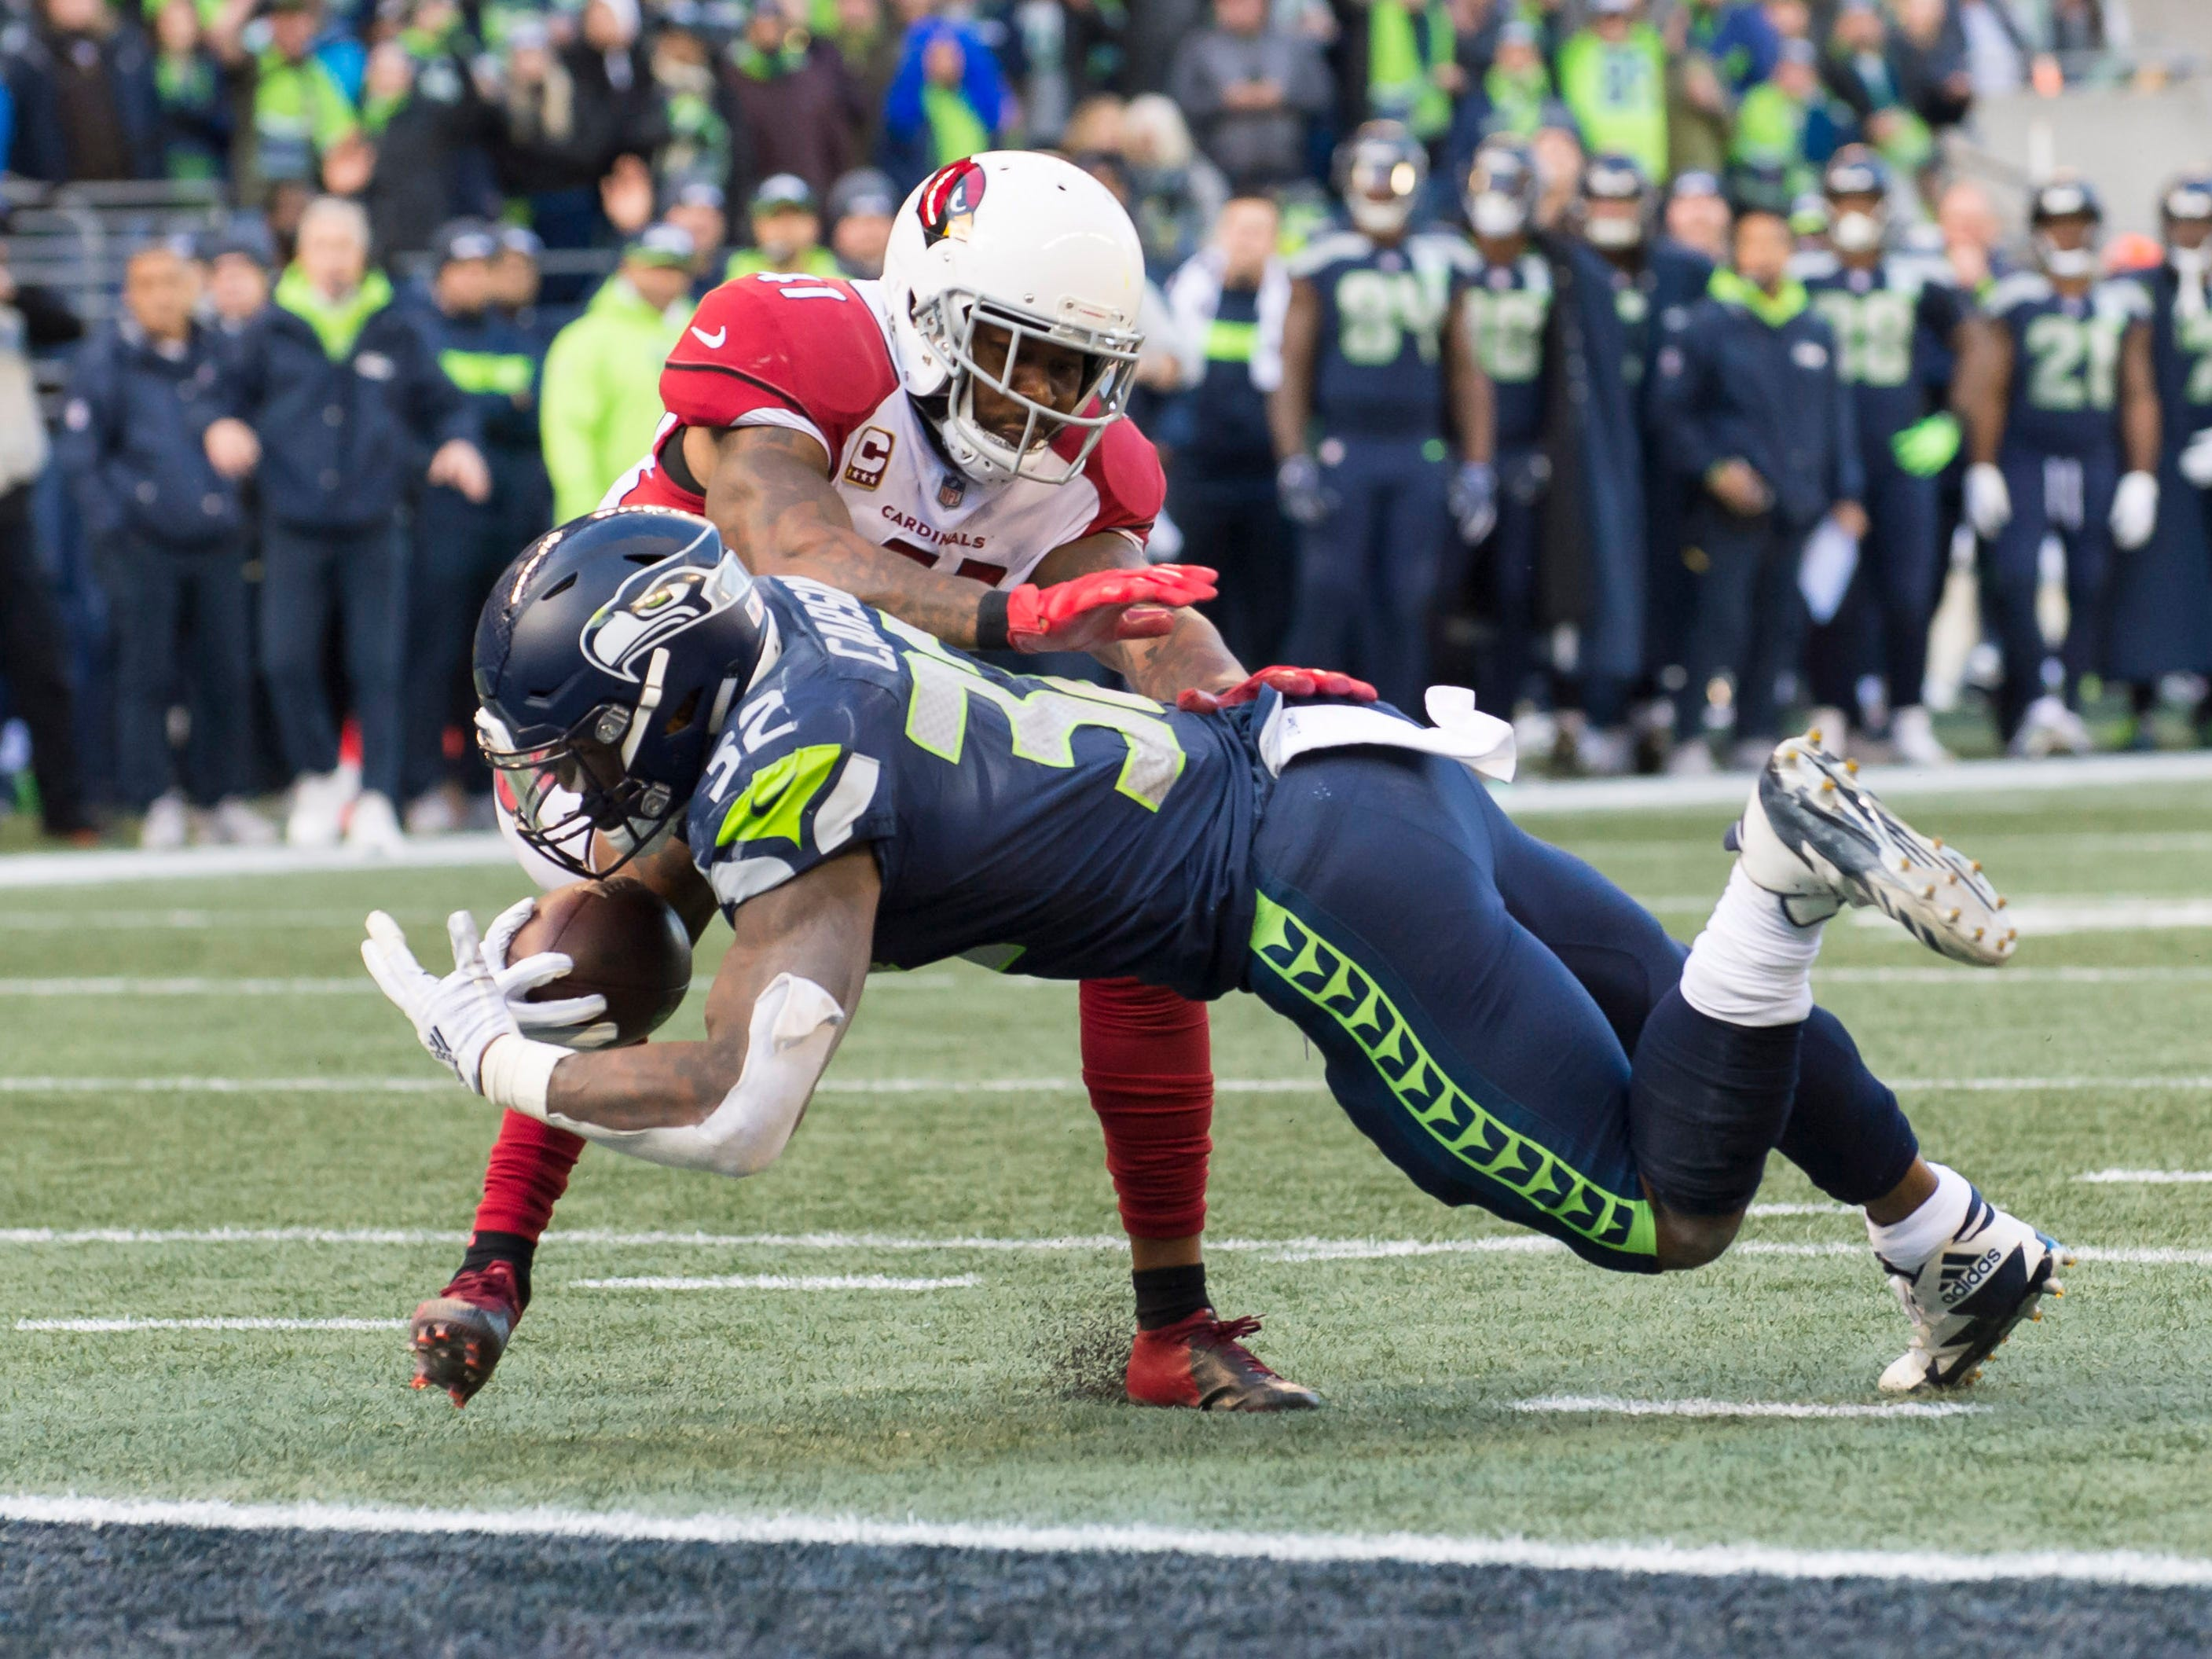 Dec 30, 2018; Seattle, WA, USA; Seattle Seahawks running back Chris Carson (32) carries the ball in for a touchdown during the first half against the Arizona Cardinals at CenturyLink Field. Mandatory Credit: Steven Bisig-USA TODAY Sports